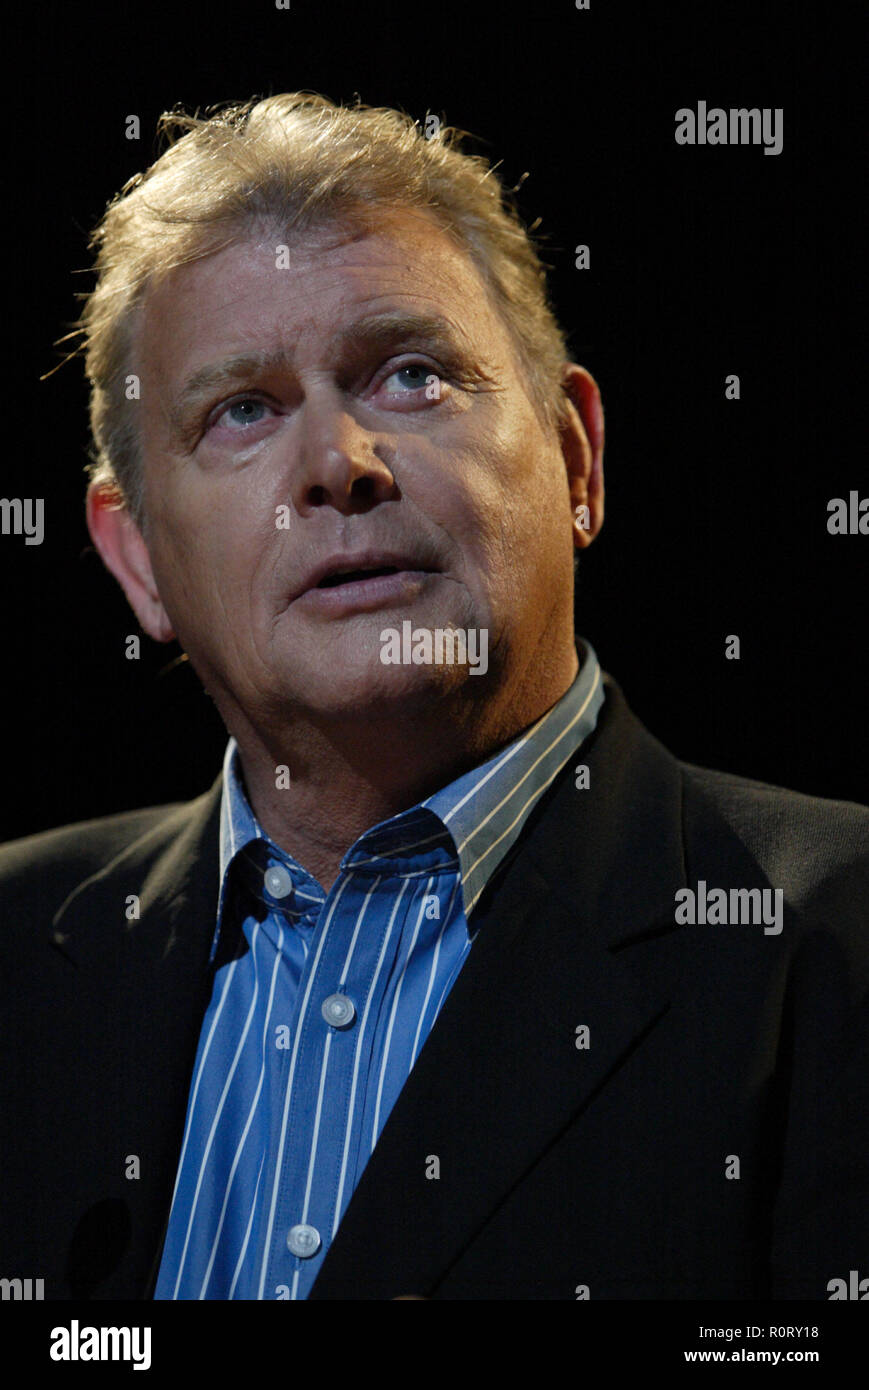 John Farnham holds a press conference at the Lyric Theatre in Star City Casino to announce his 'Live By Demand' tour being held in small, intimate venues across Australia in September and October of 2009.   During the press conference, Farnham stated that his return to live music was inspired by Chris Martin and Coldplay after they invited him to share the stage for their performance during the Sound Relief concerts held simultaneously in Sydney and Melbourne on March 14, 2009, to raise funds for victims of Australian bushfires.  Farnham also declared that his fondness for his fan-base inspire Stock Photo